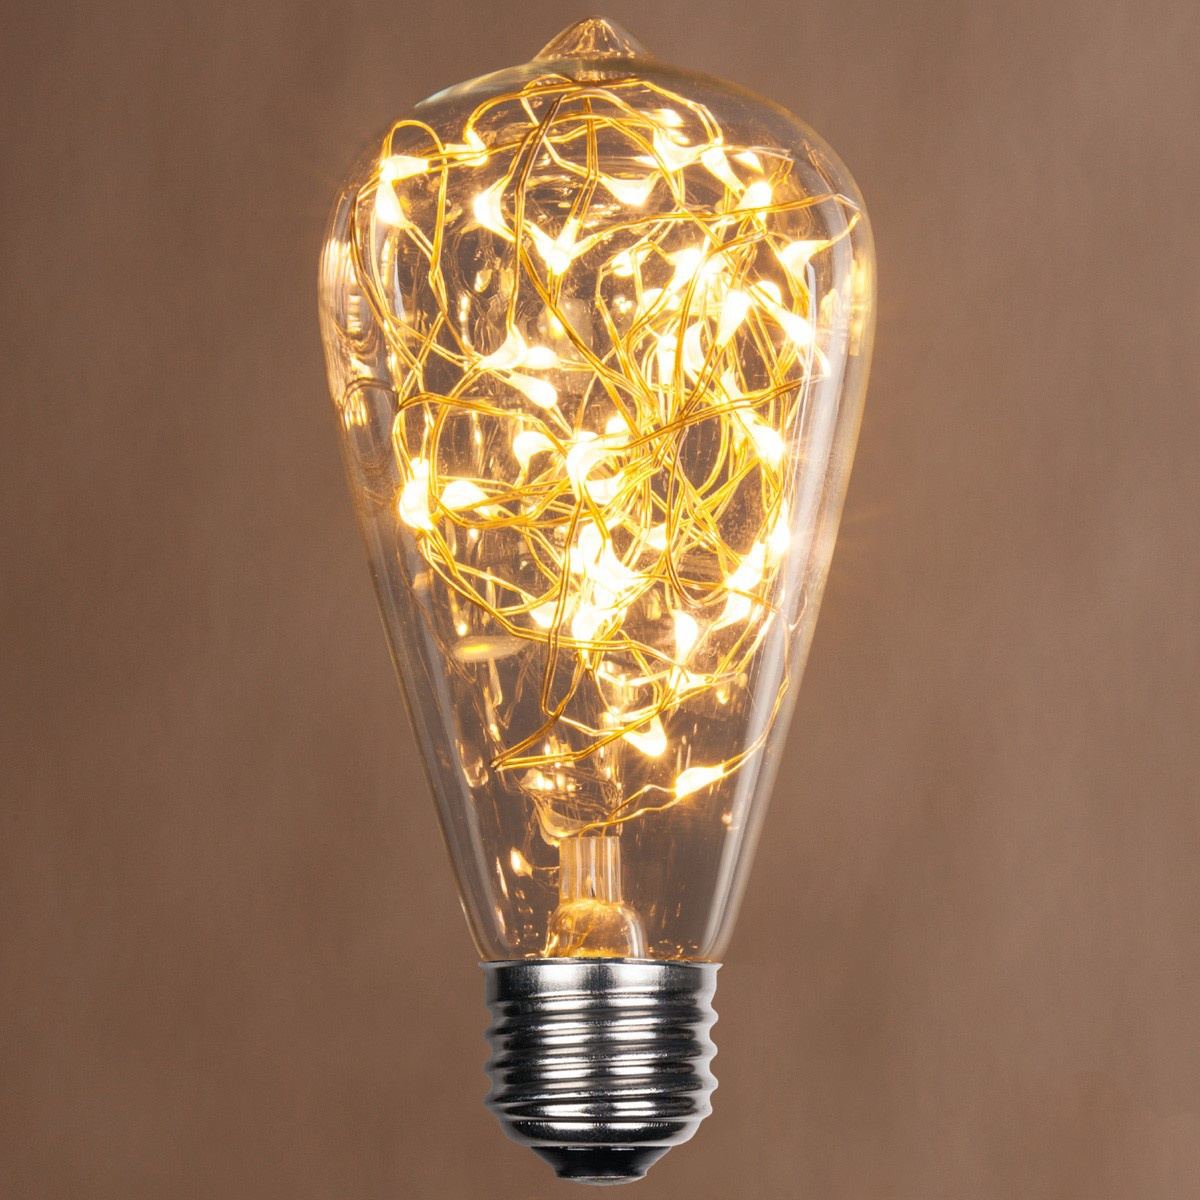 St64 Warm White Ledimagine Tm Fairy Light Bulb